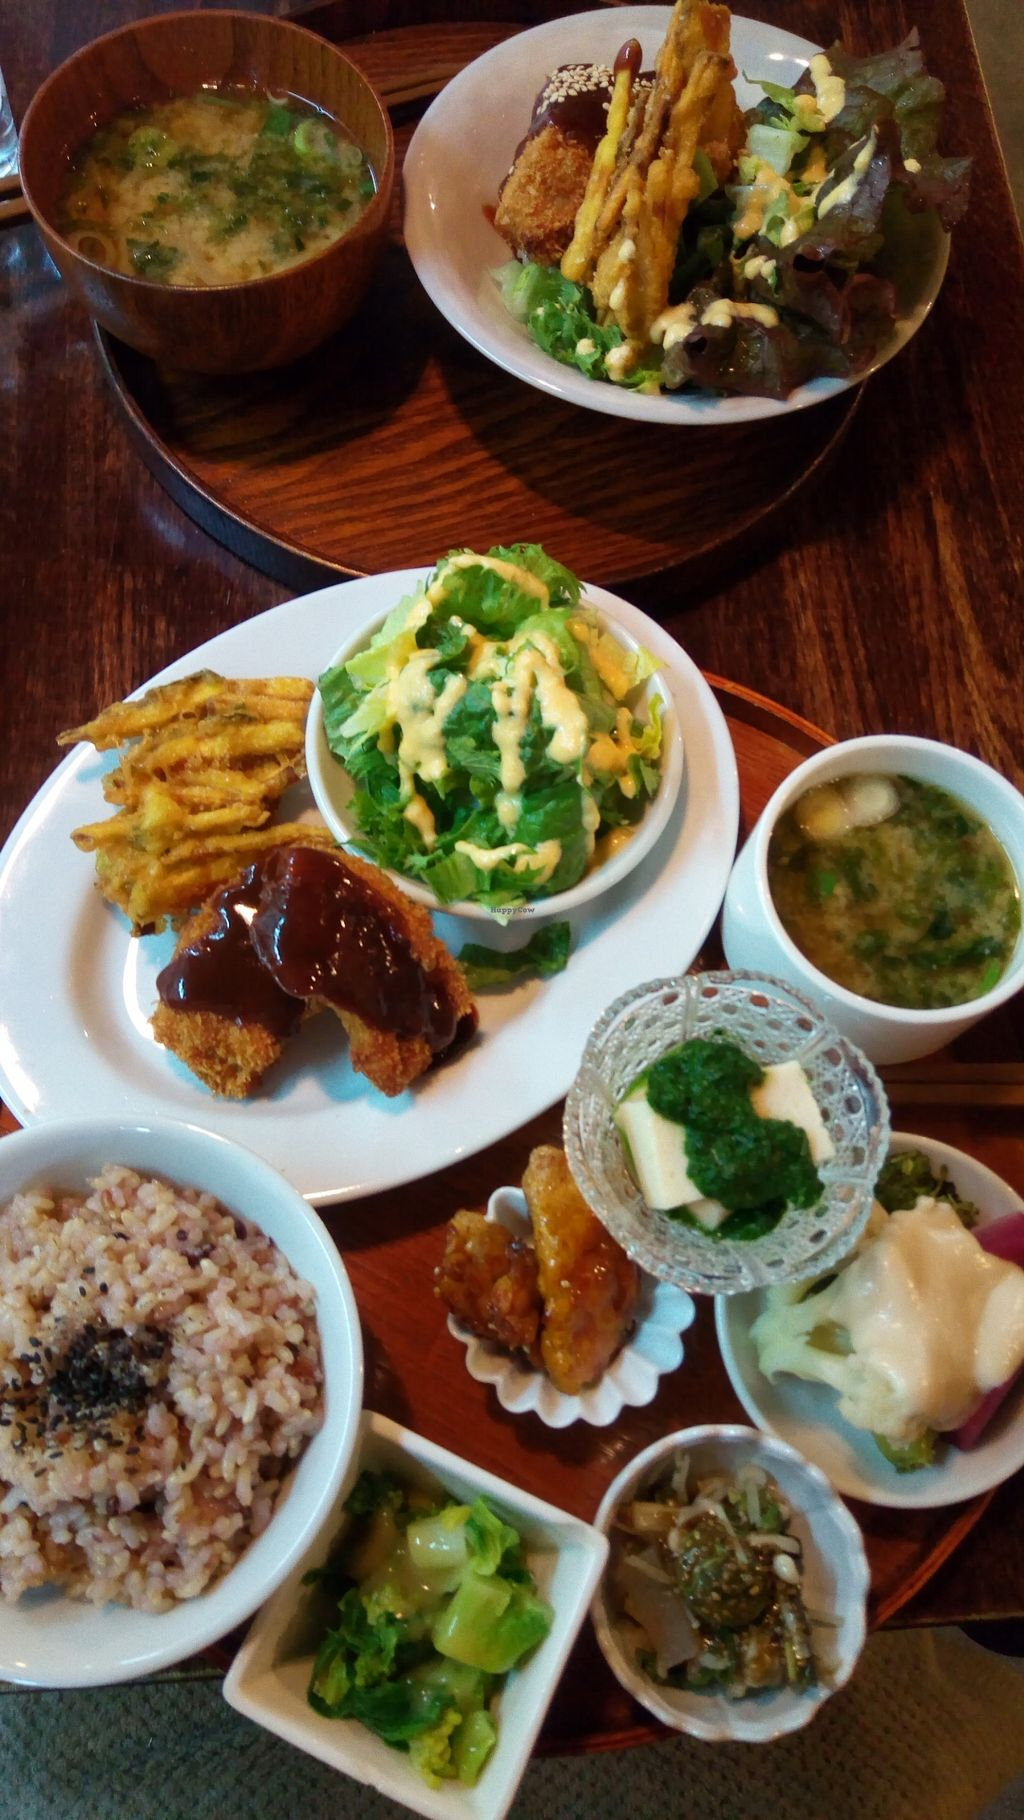 "Photo of Yamagoya  by <a href=""/members/profile/takanakamura"">takanakamura</a> <br/>Lunch of the day (everything is plant-based and made of local organic produce) <br/> March 14, 2018  - <a href='/contact/abuse/image/114531/370409'>Report</a>"